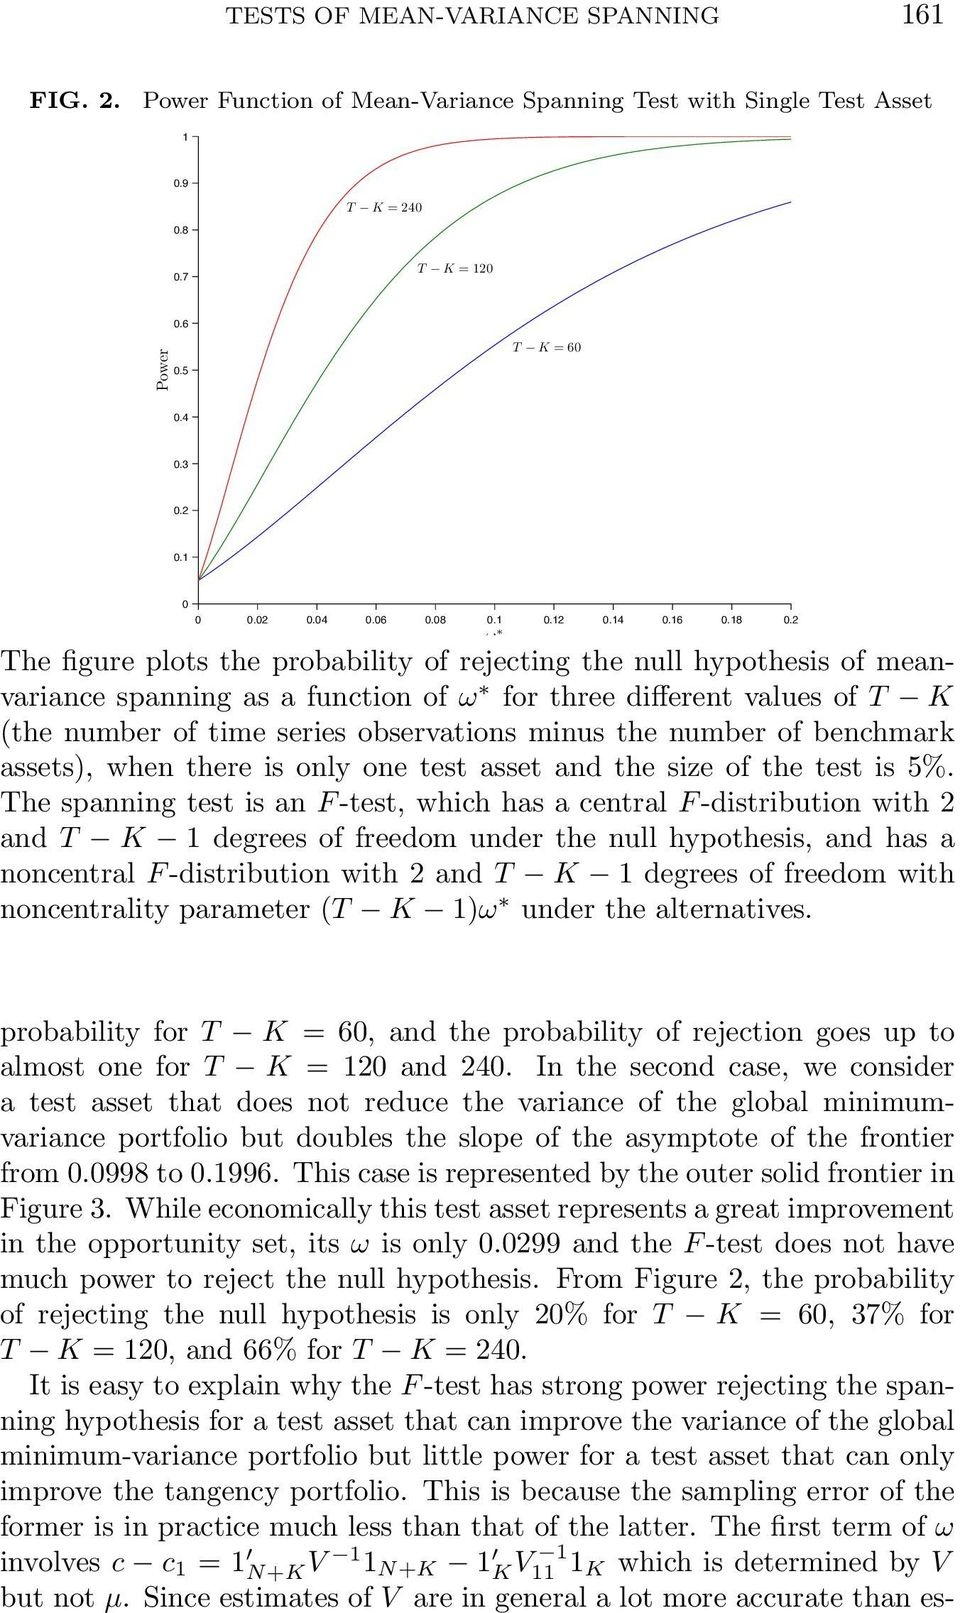 2 ω The figure plots the probability of rejecting the null hypothesis of meanvariance spanning FIGURE 2as a function of ω for three different values of T K Power Function of Mean-Variance Spanning